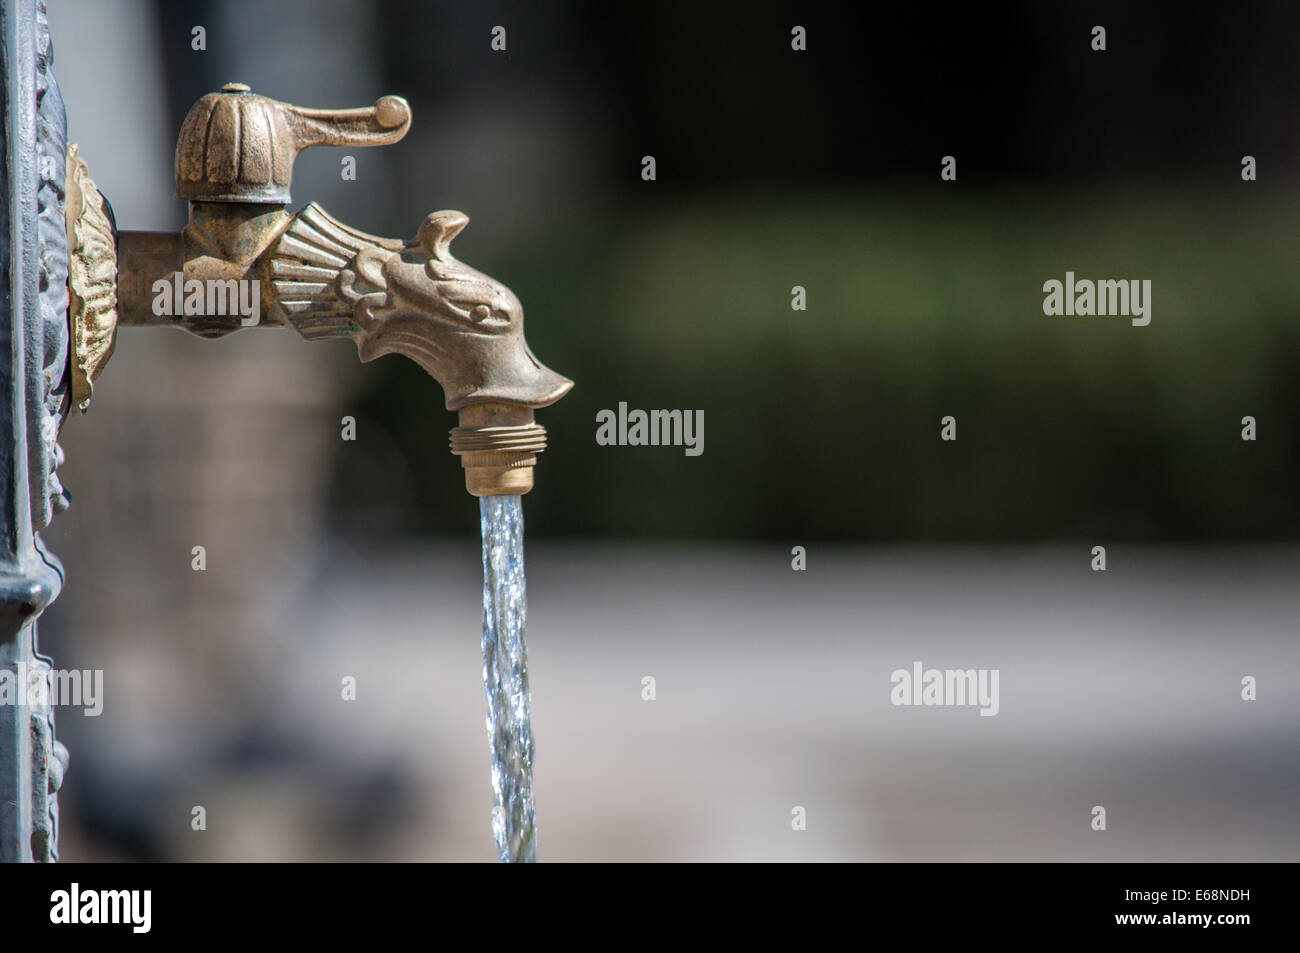 Tap Water Fountain Stock Photos & Tap Water Fountain Stock Images ...